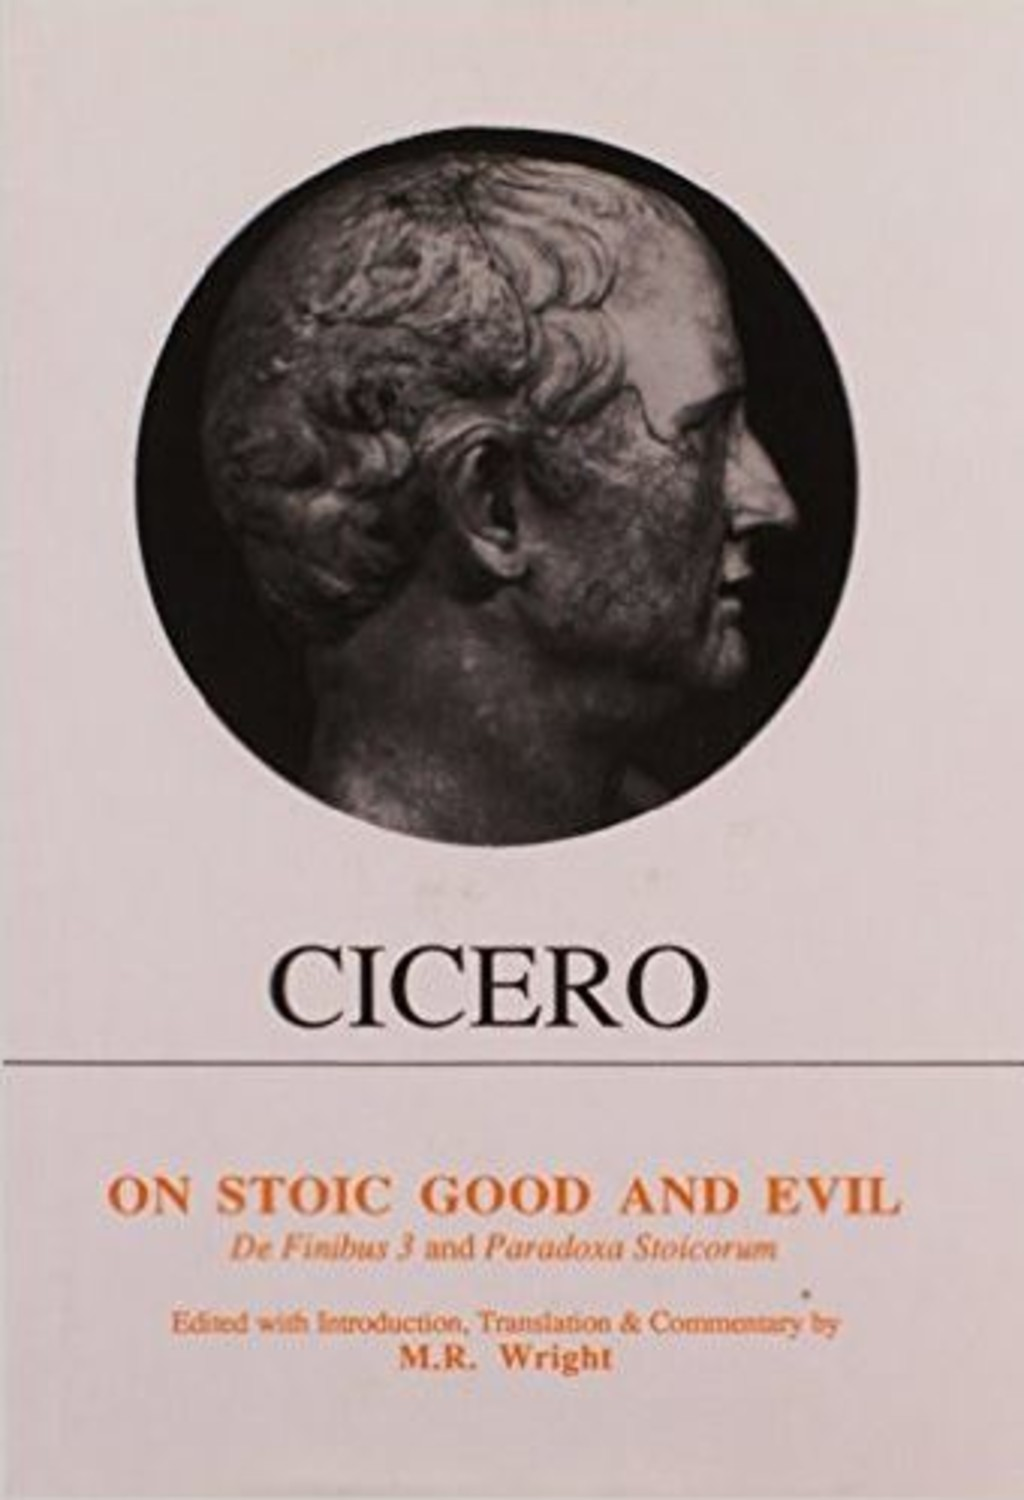 Cicero: On Stoic Good and Evil